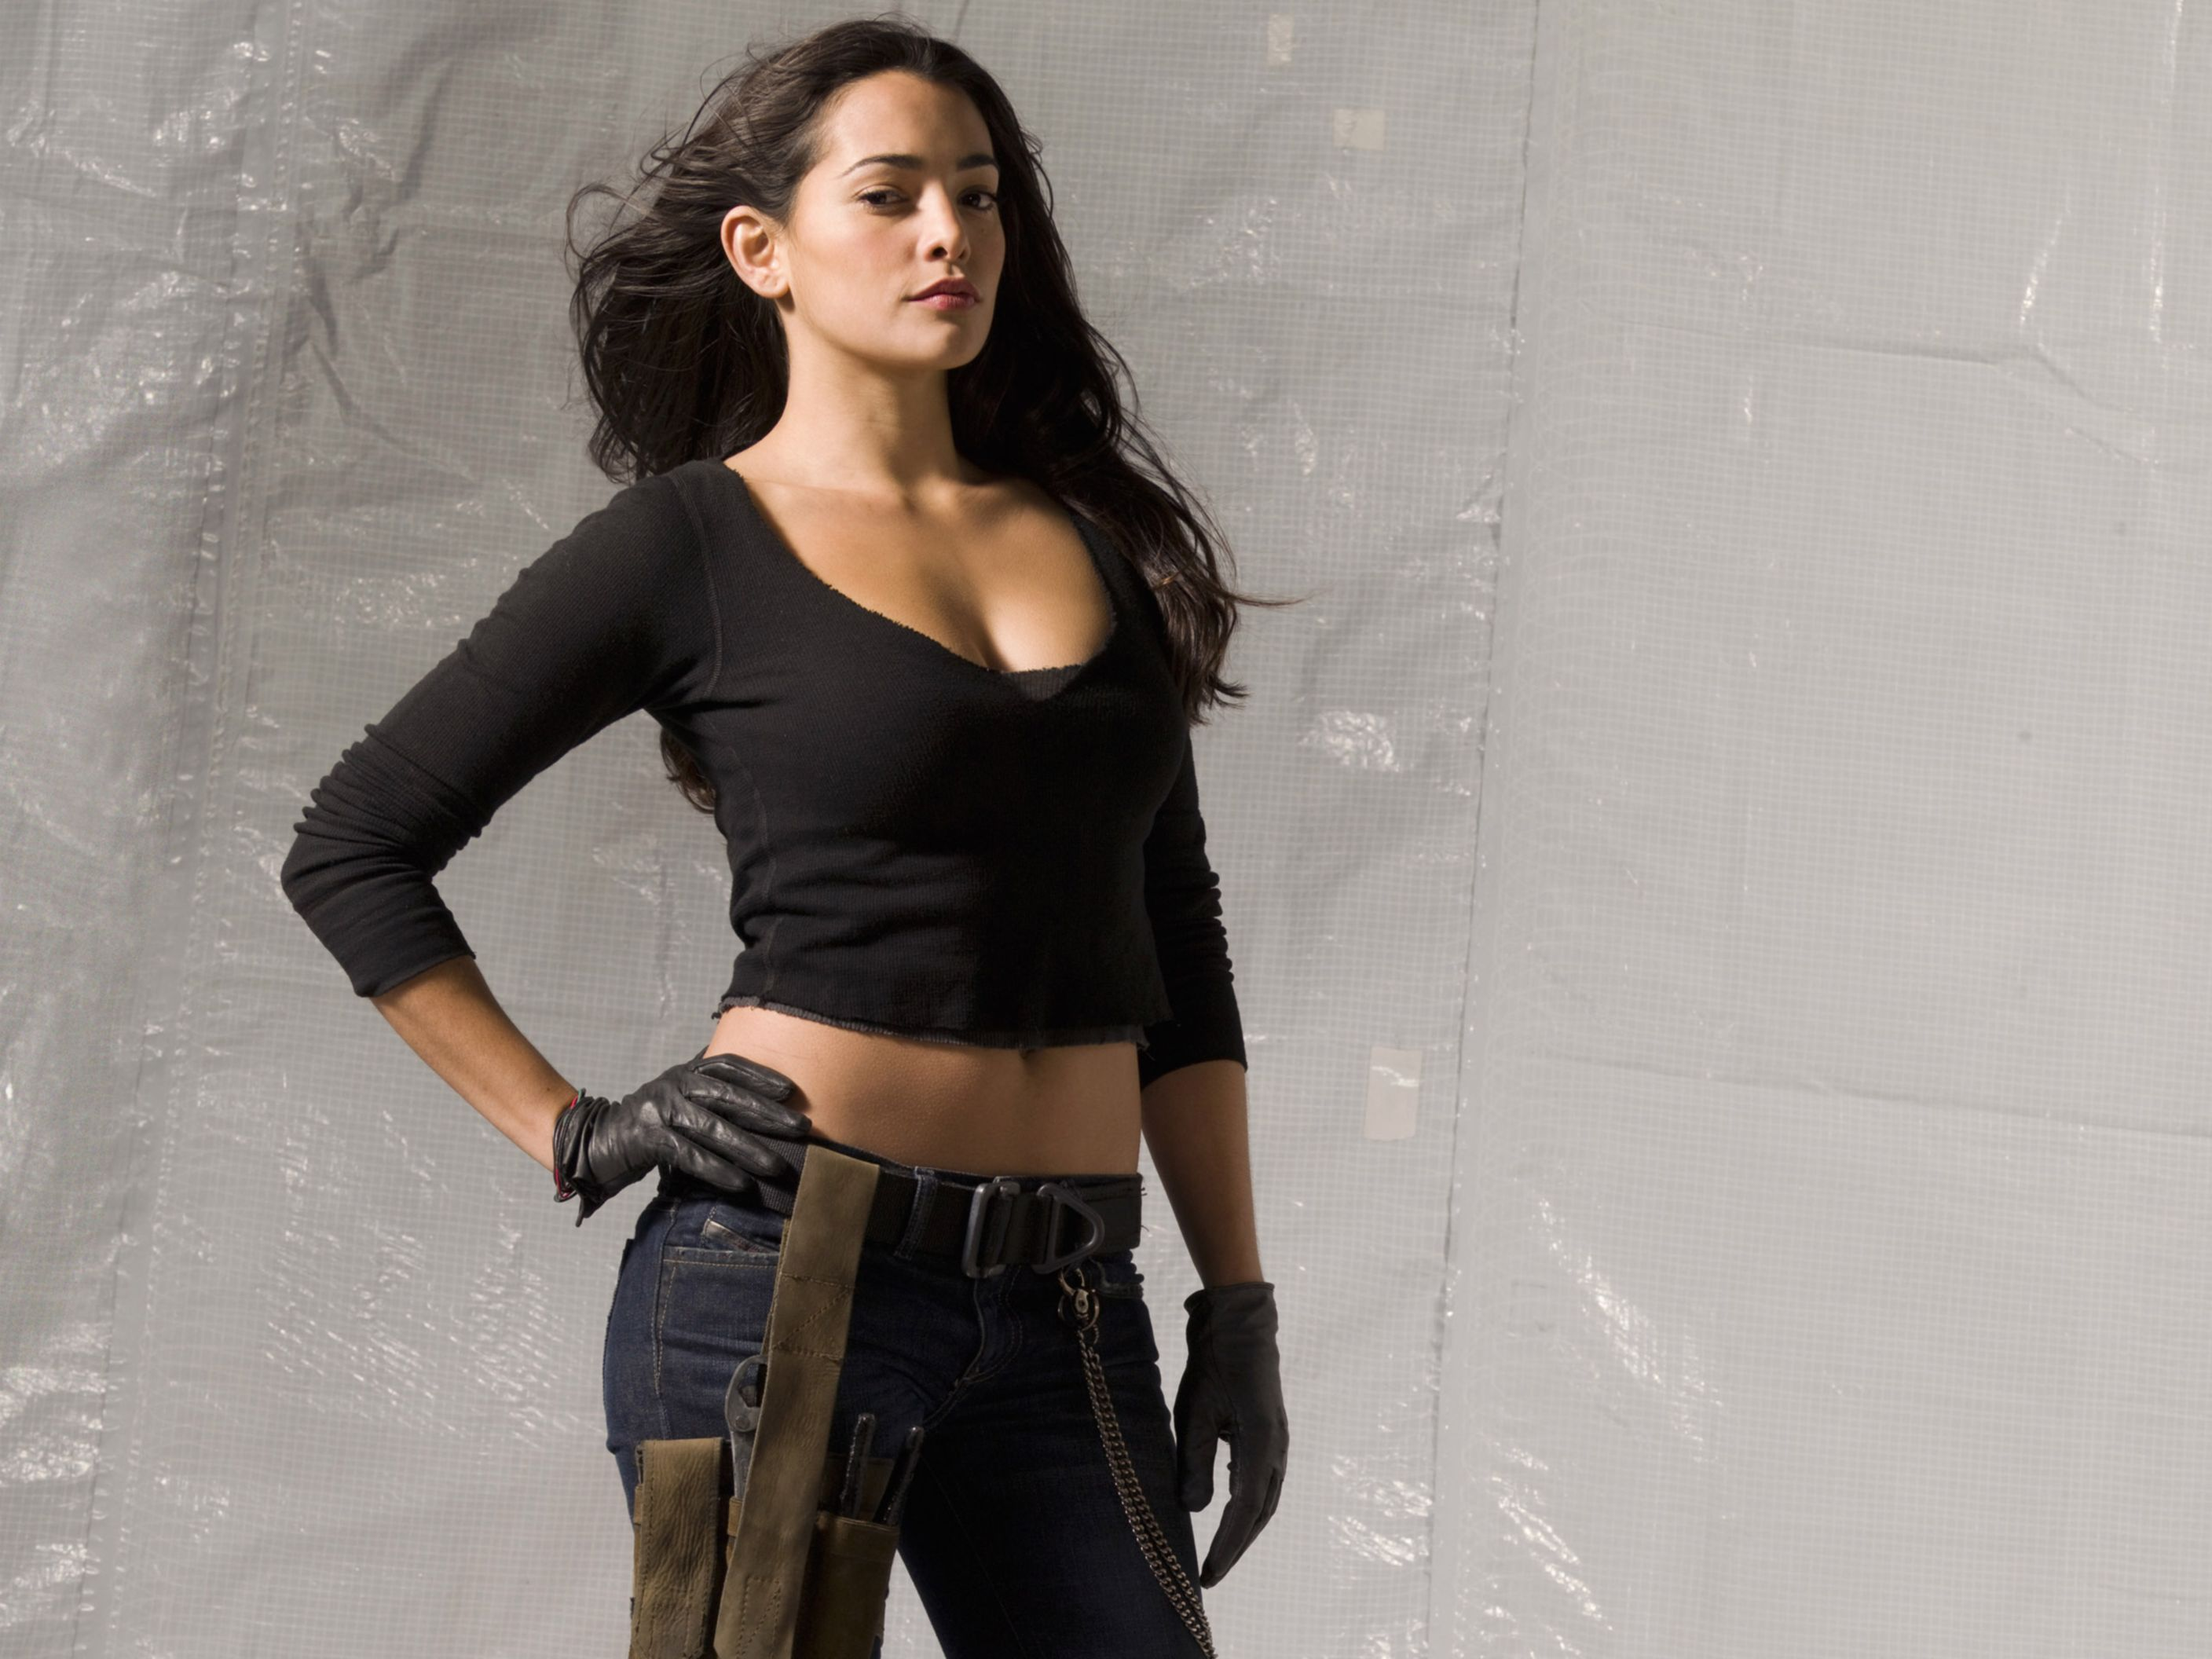 Download free HD Natalie Martinez 10 Normal Wallpaper, image